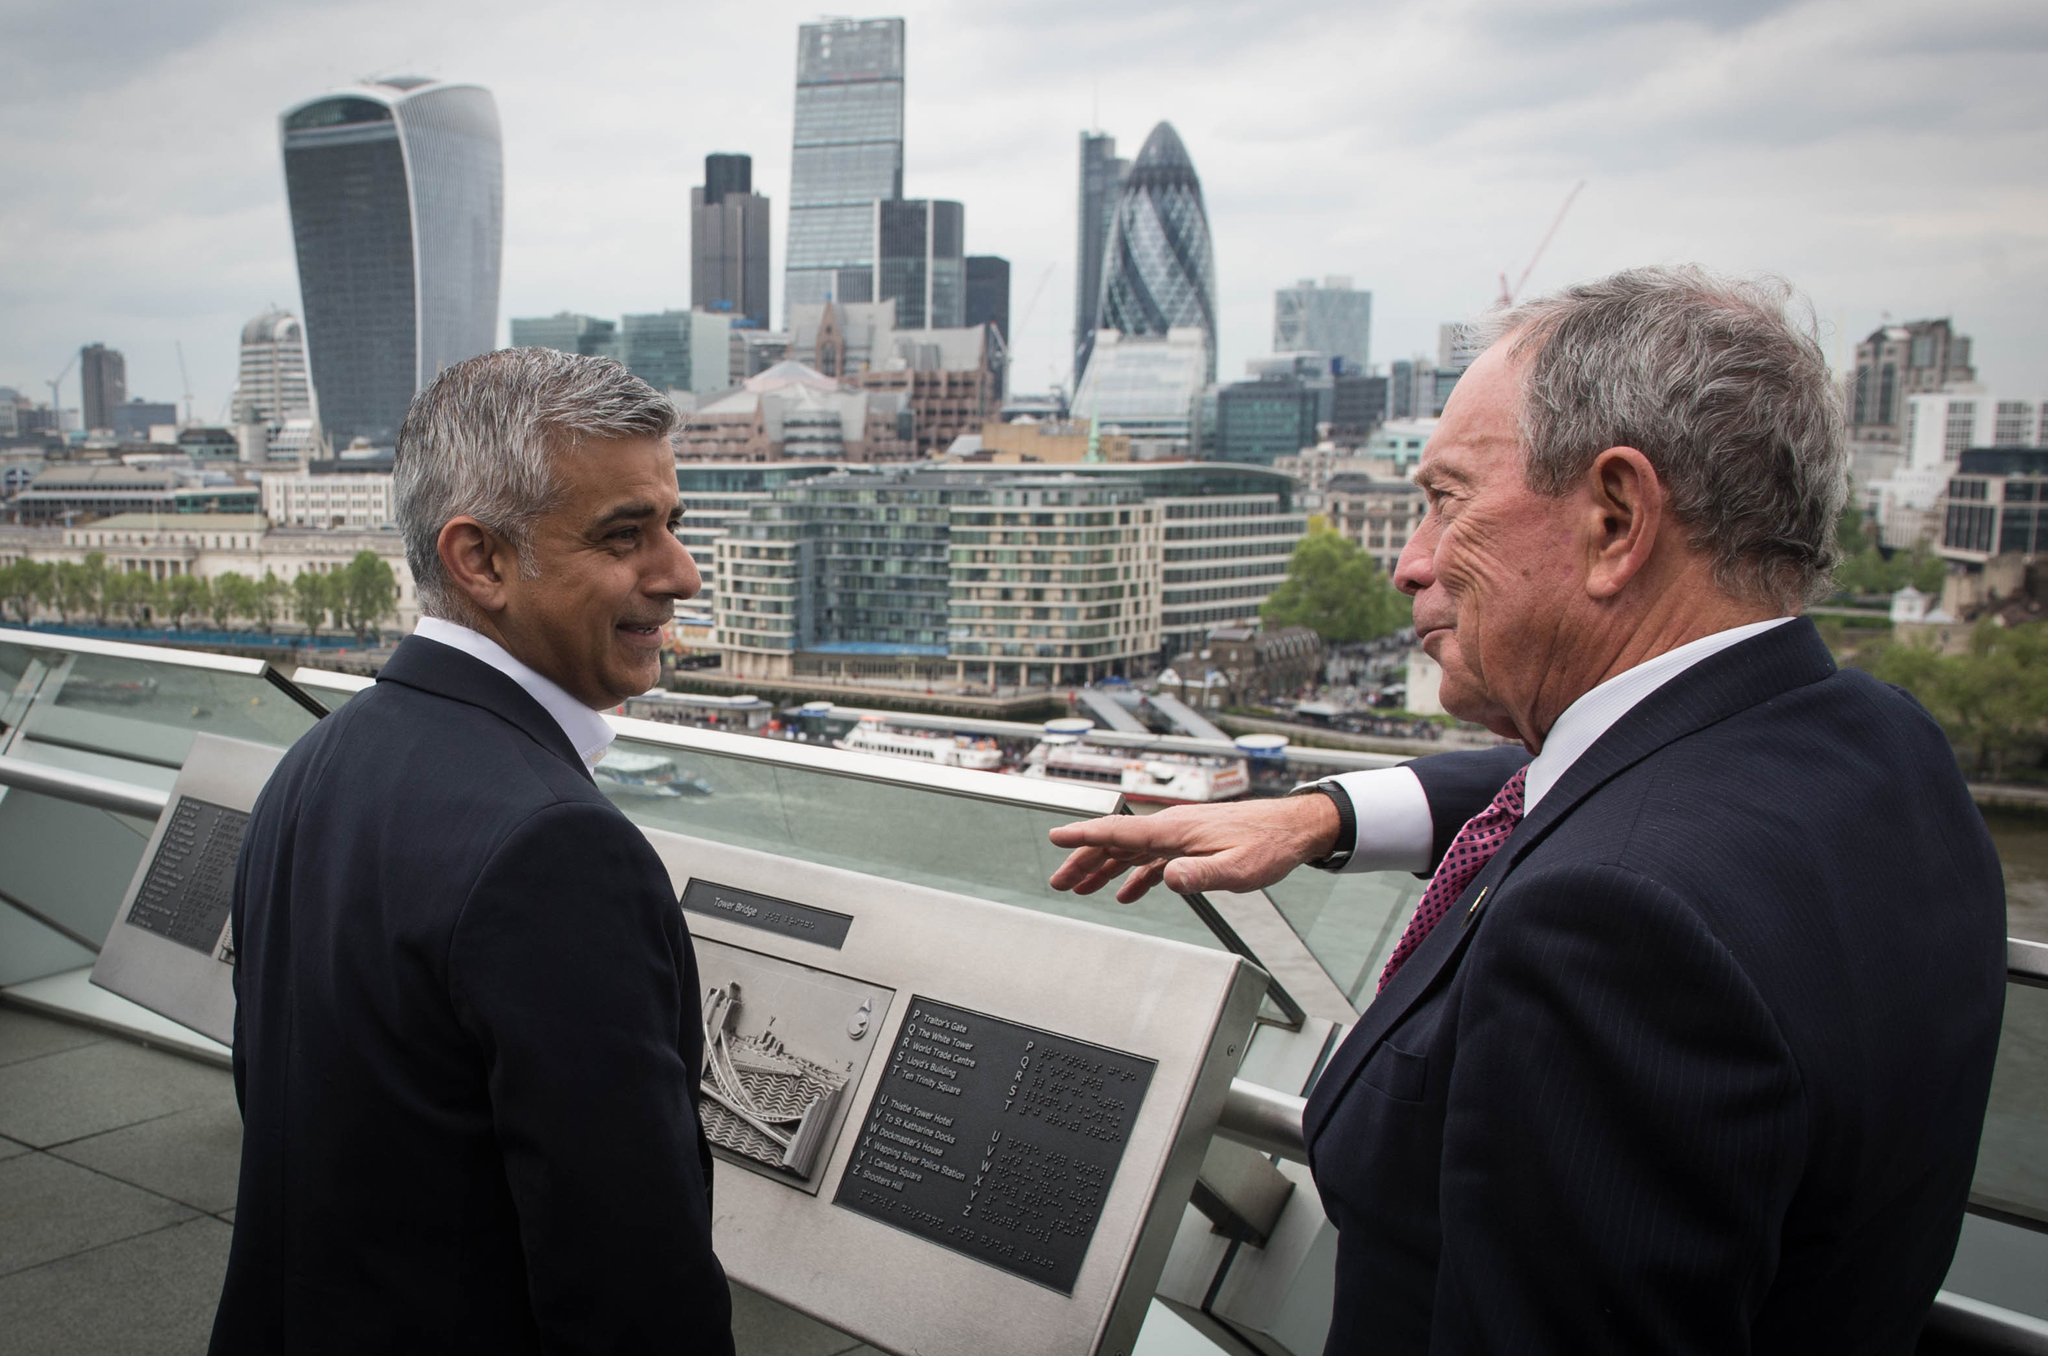 Mayor of London Sadiq Khan (left) meets former mayor of New York Michael Bloomberg at City Hall in London